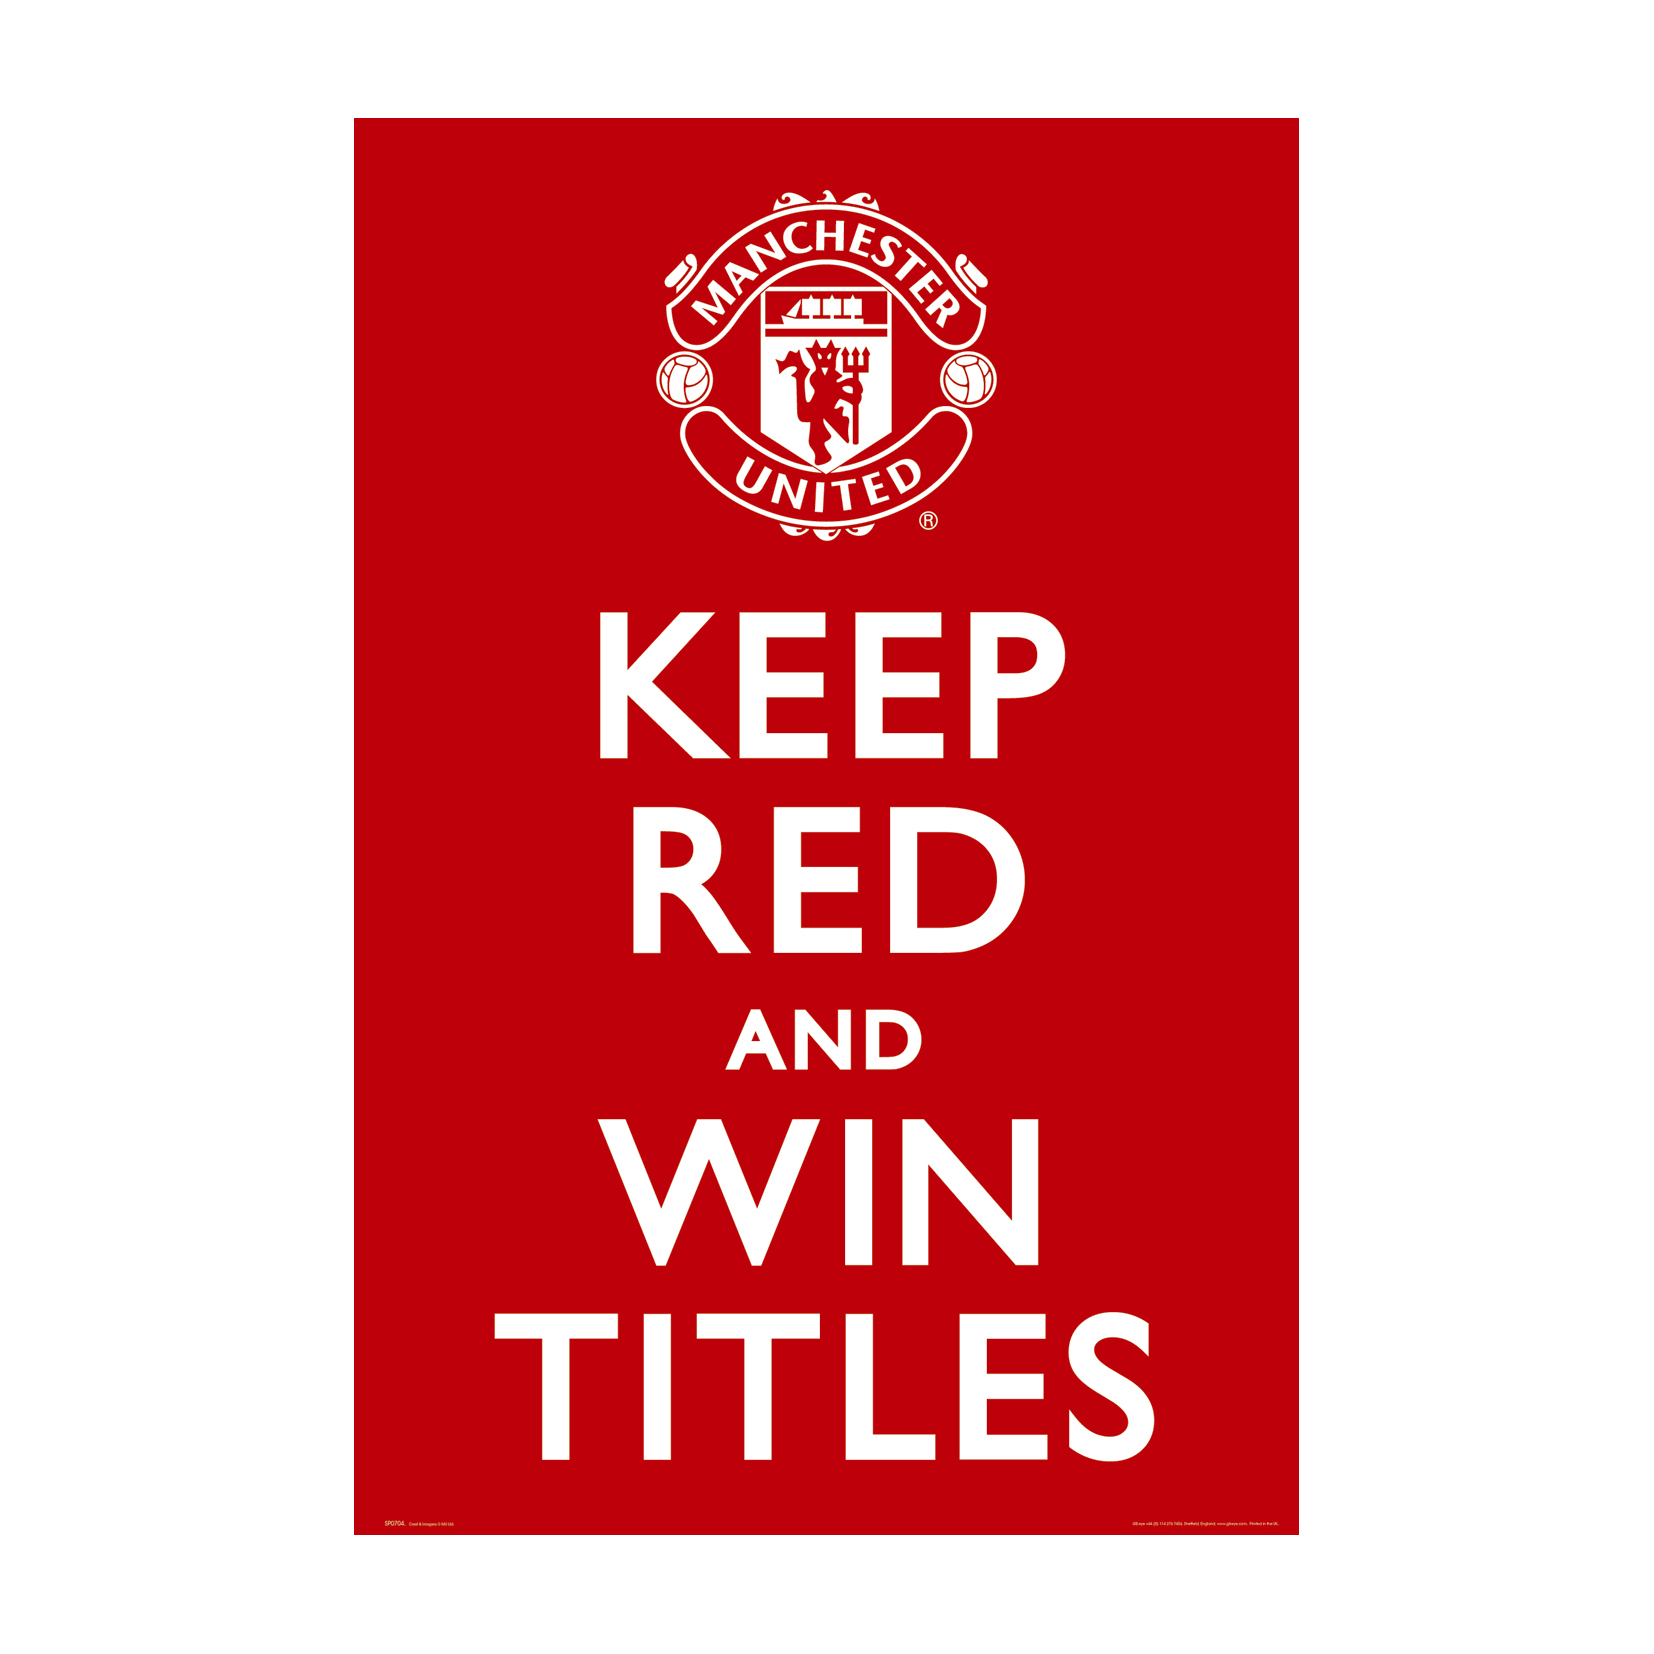 Manchester United Keep Red Poster - 61 x 92cm